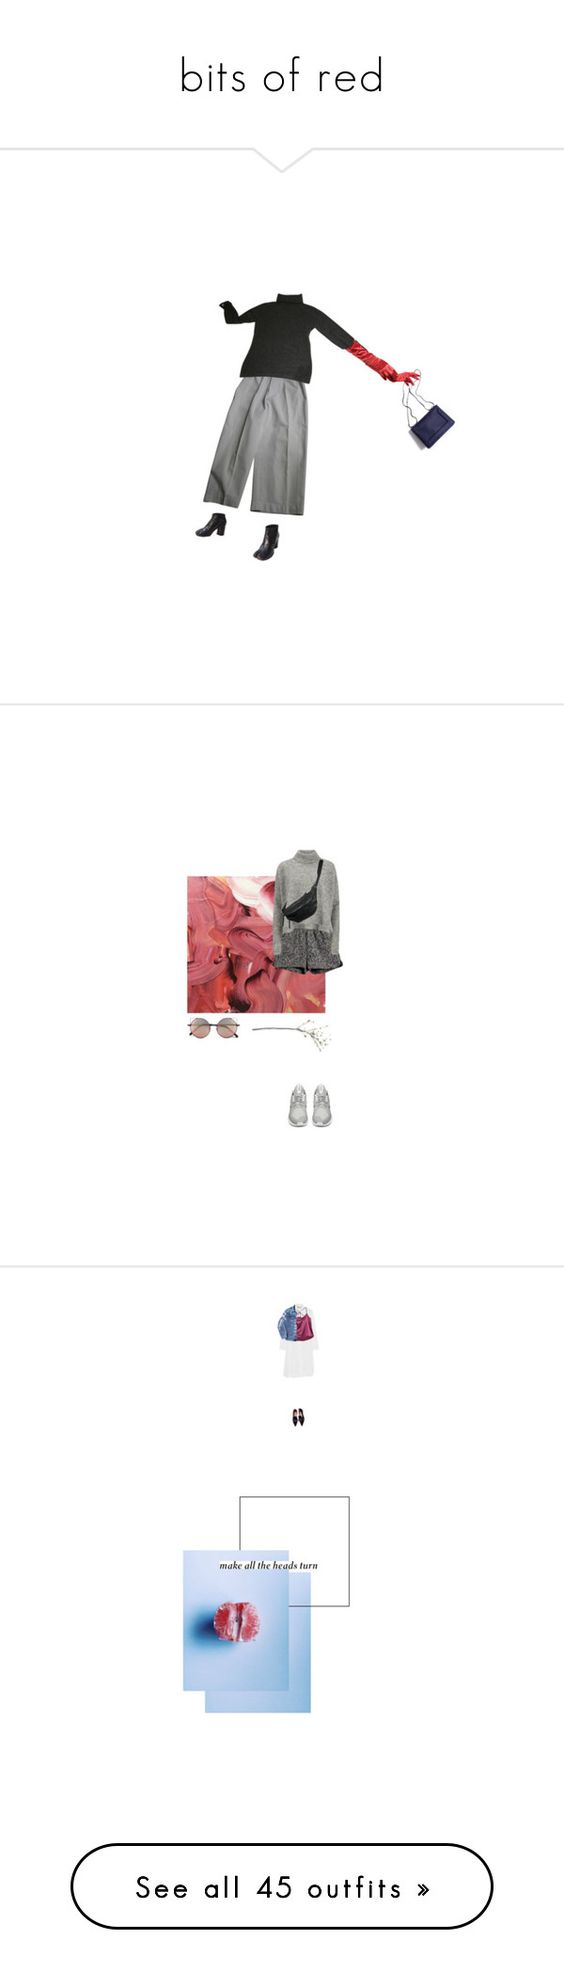 """""""bits of red"""" by emma-woolf ❤ liked on Polyvore featuring Maison Margiela, Yves Saint Laurent, Nina Ricci, 3.1 Phillip Lim, women's clothing, women, female, woman, misses and juniors"""